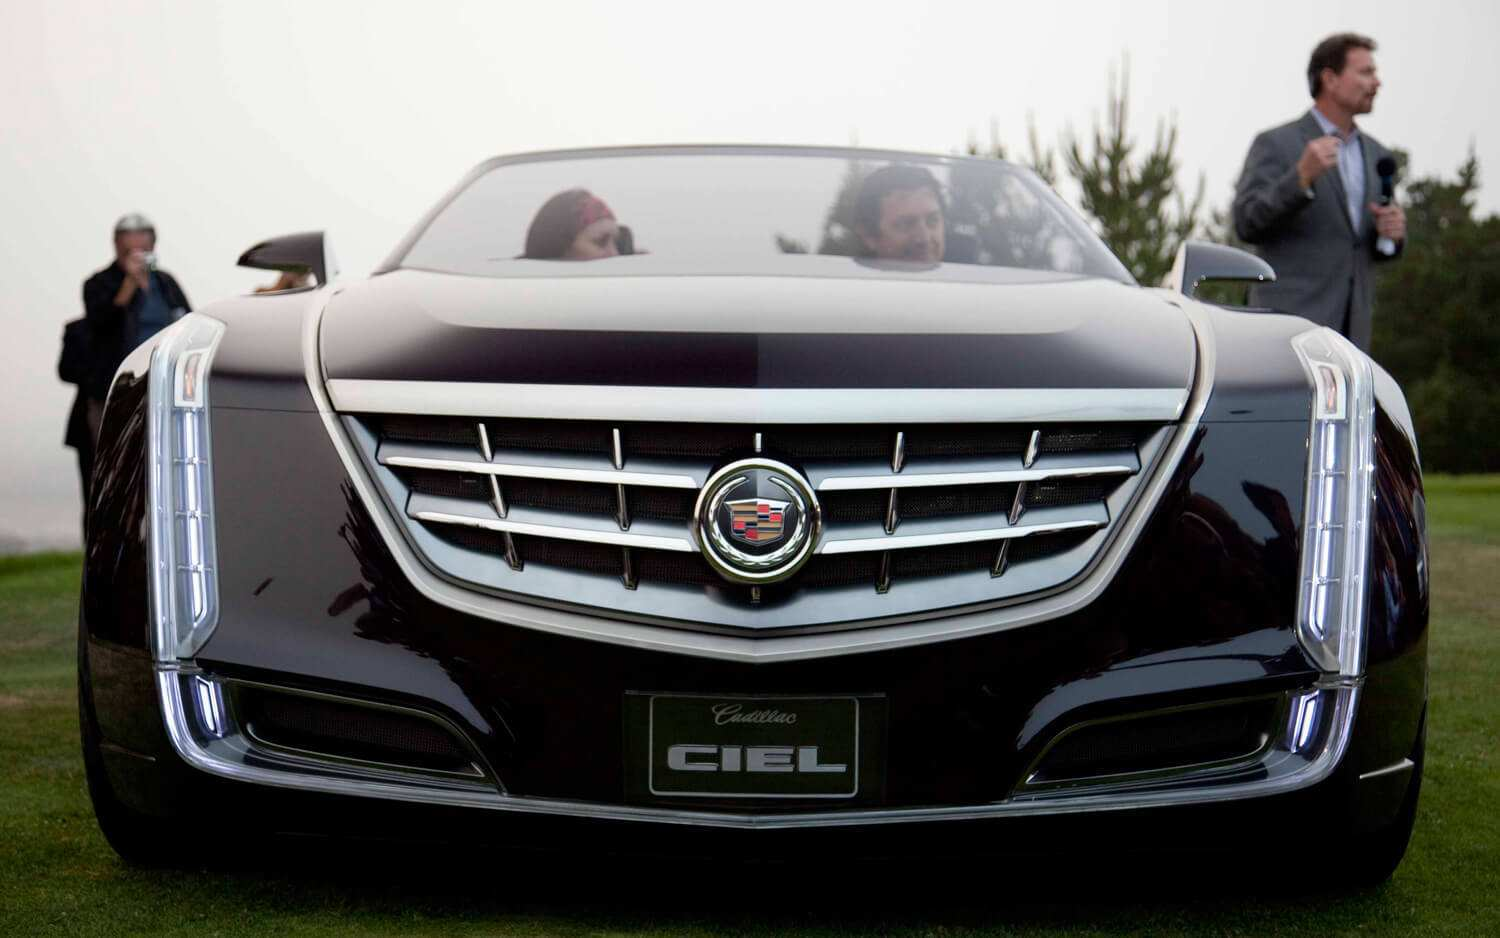 56 New 2020 Cadillac Convertible Pricing